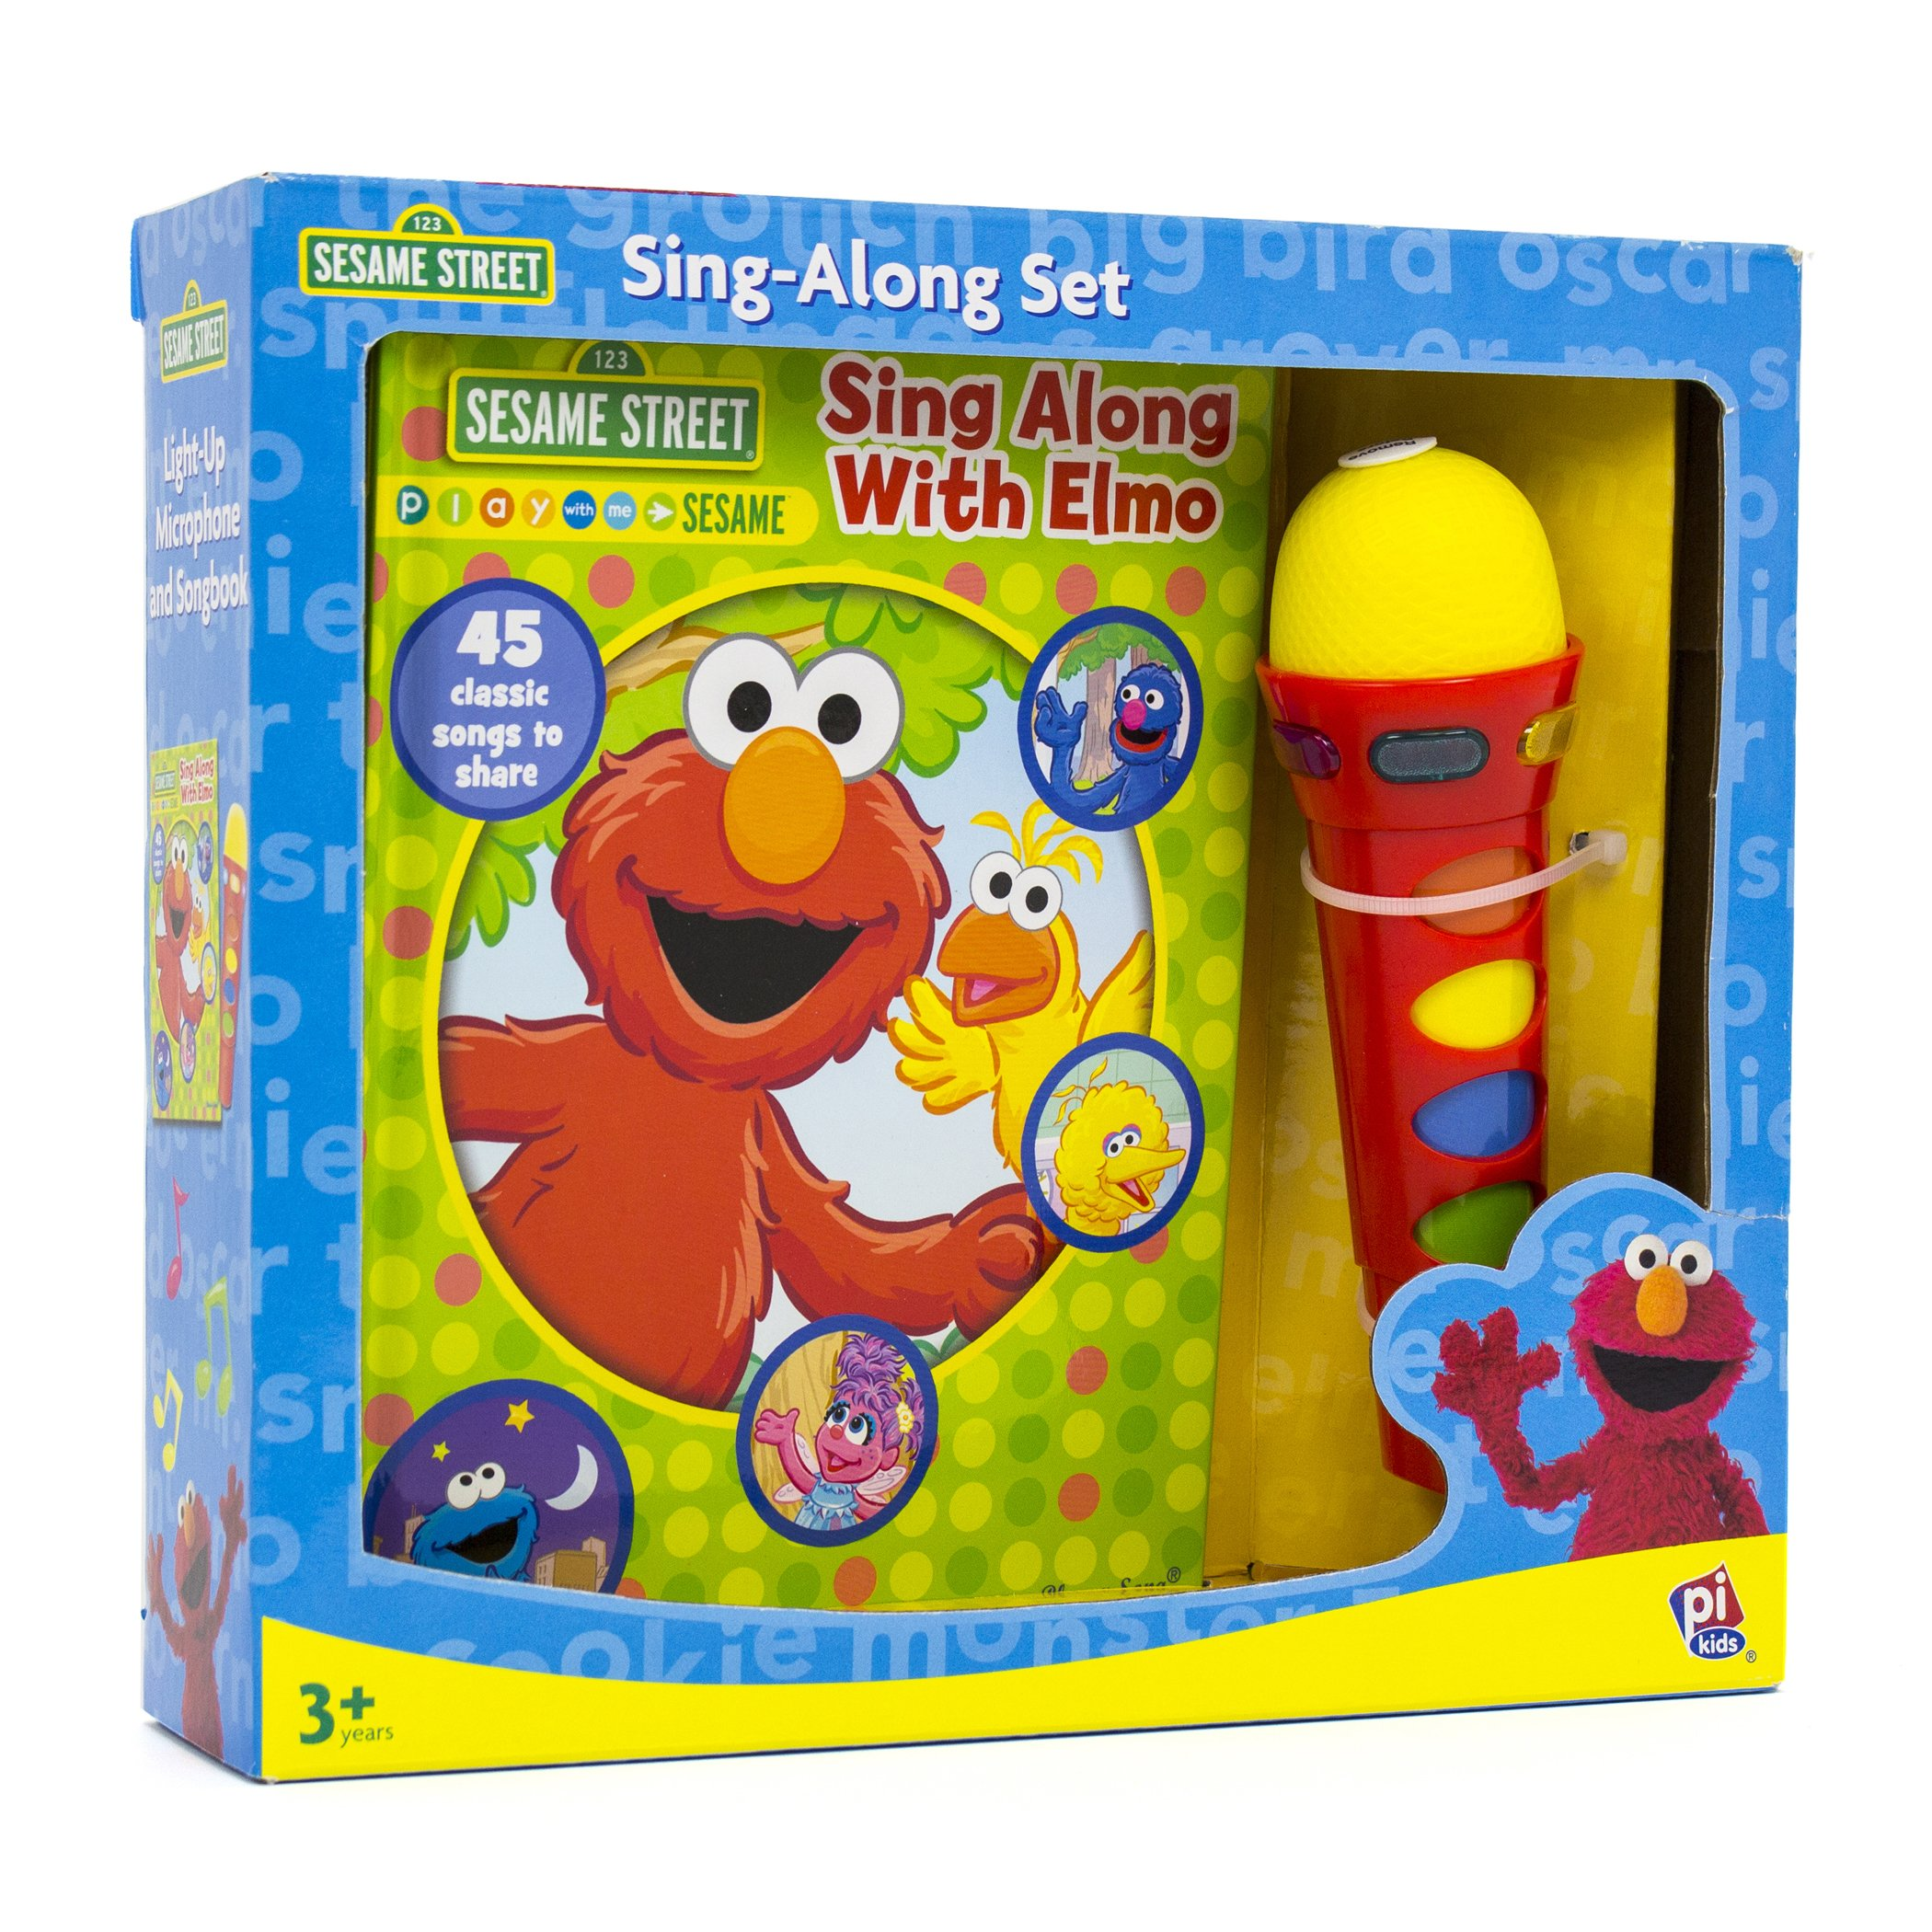 Hachette Book Group PUB7542500-A1 Book, Box, and Module Elmo Microphone by Hachette Book Group (Image #1)